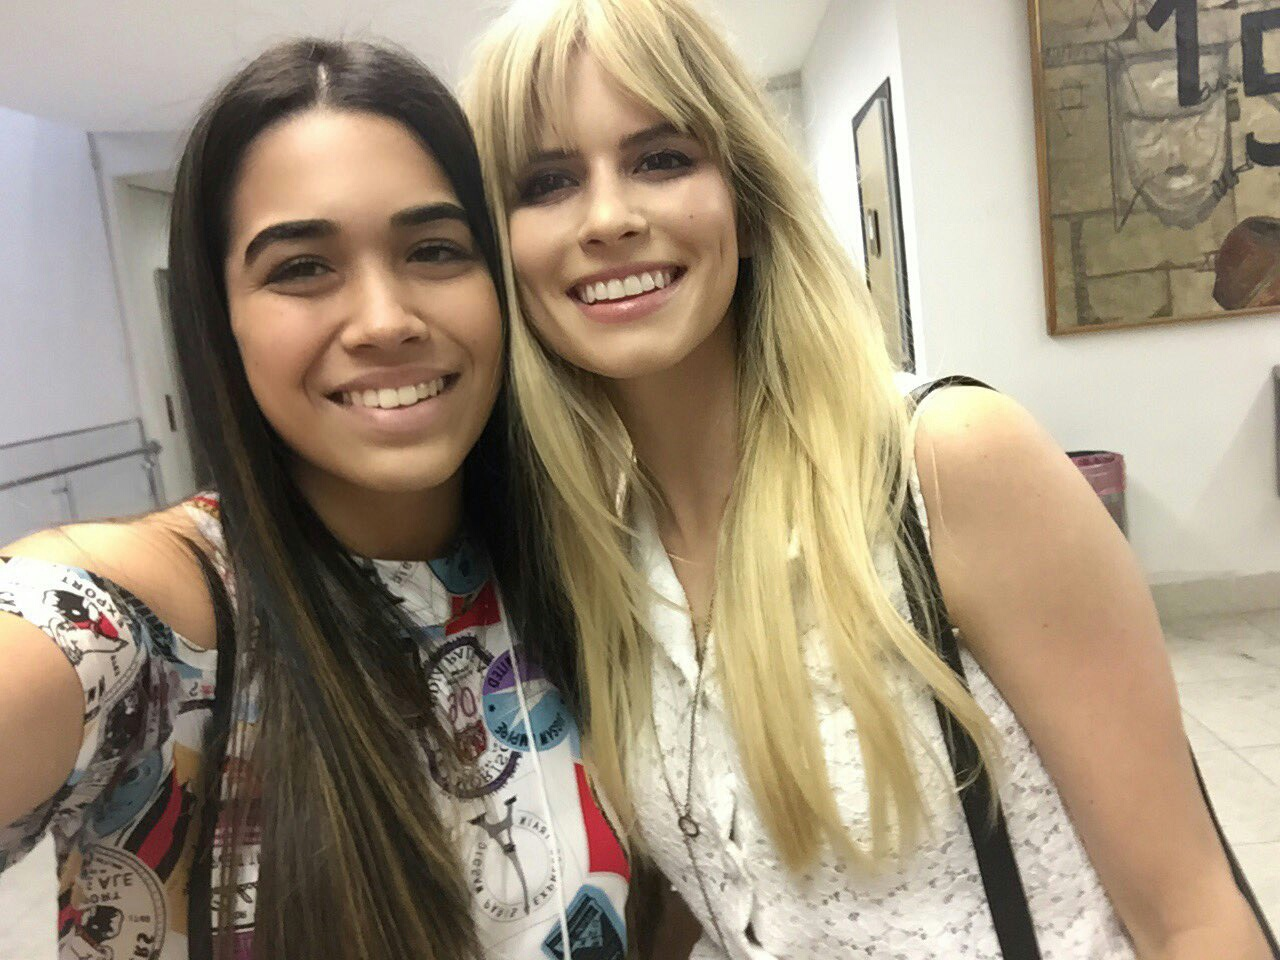 Selfie Carlson Young naked (75 photo), Tits, Leaked, Boobs, cameltoe 2020